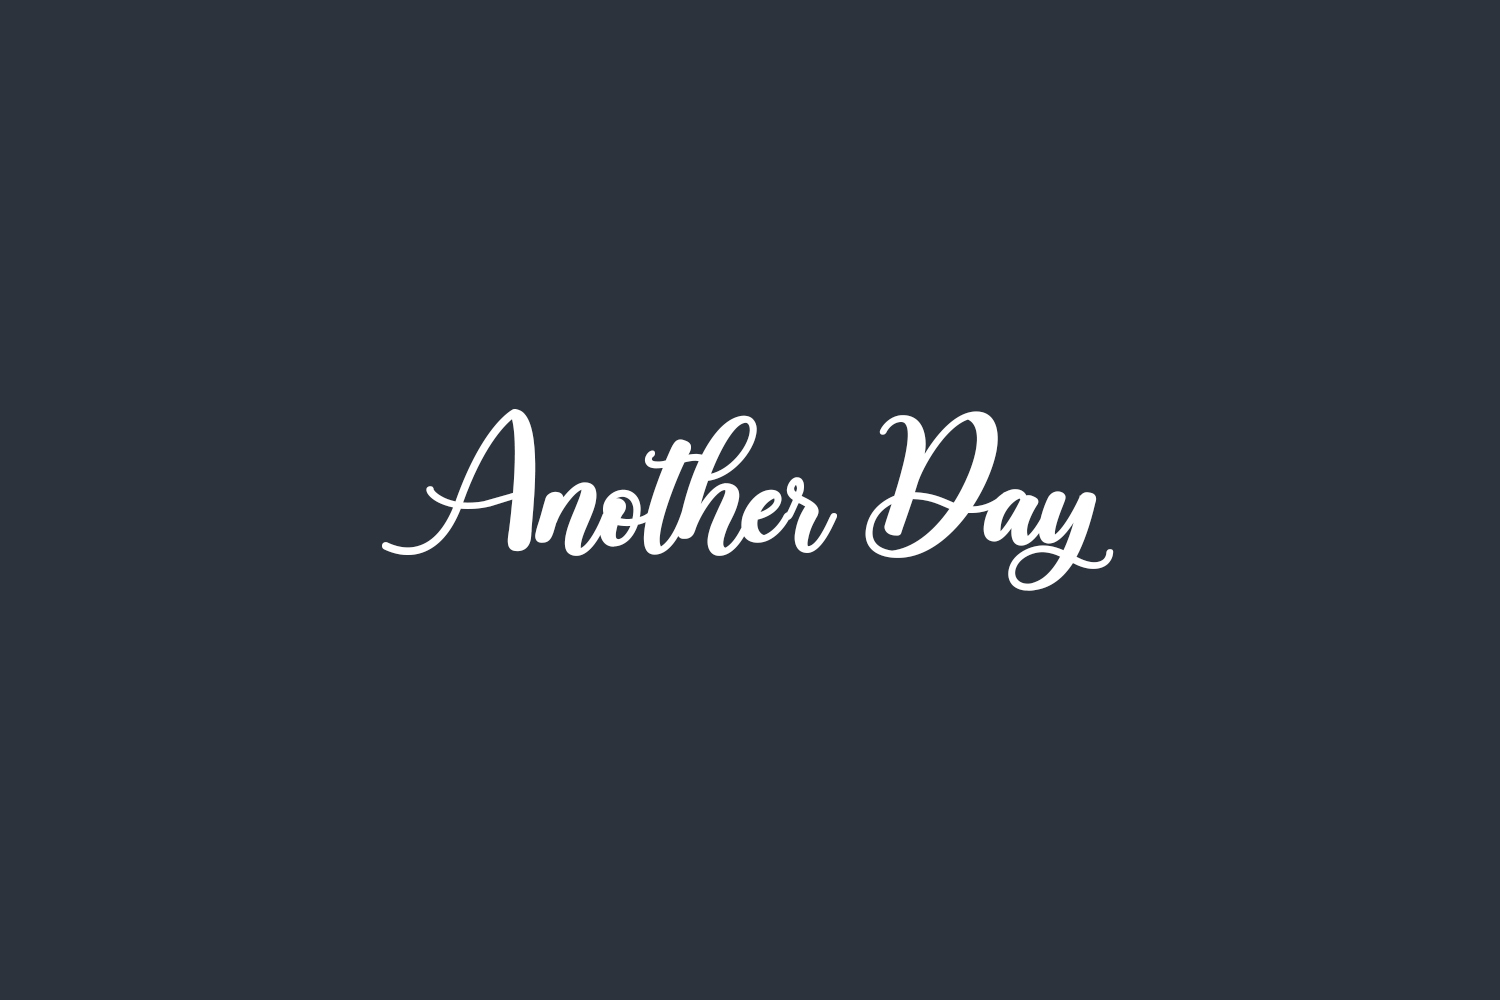 Another Day Free Font